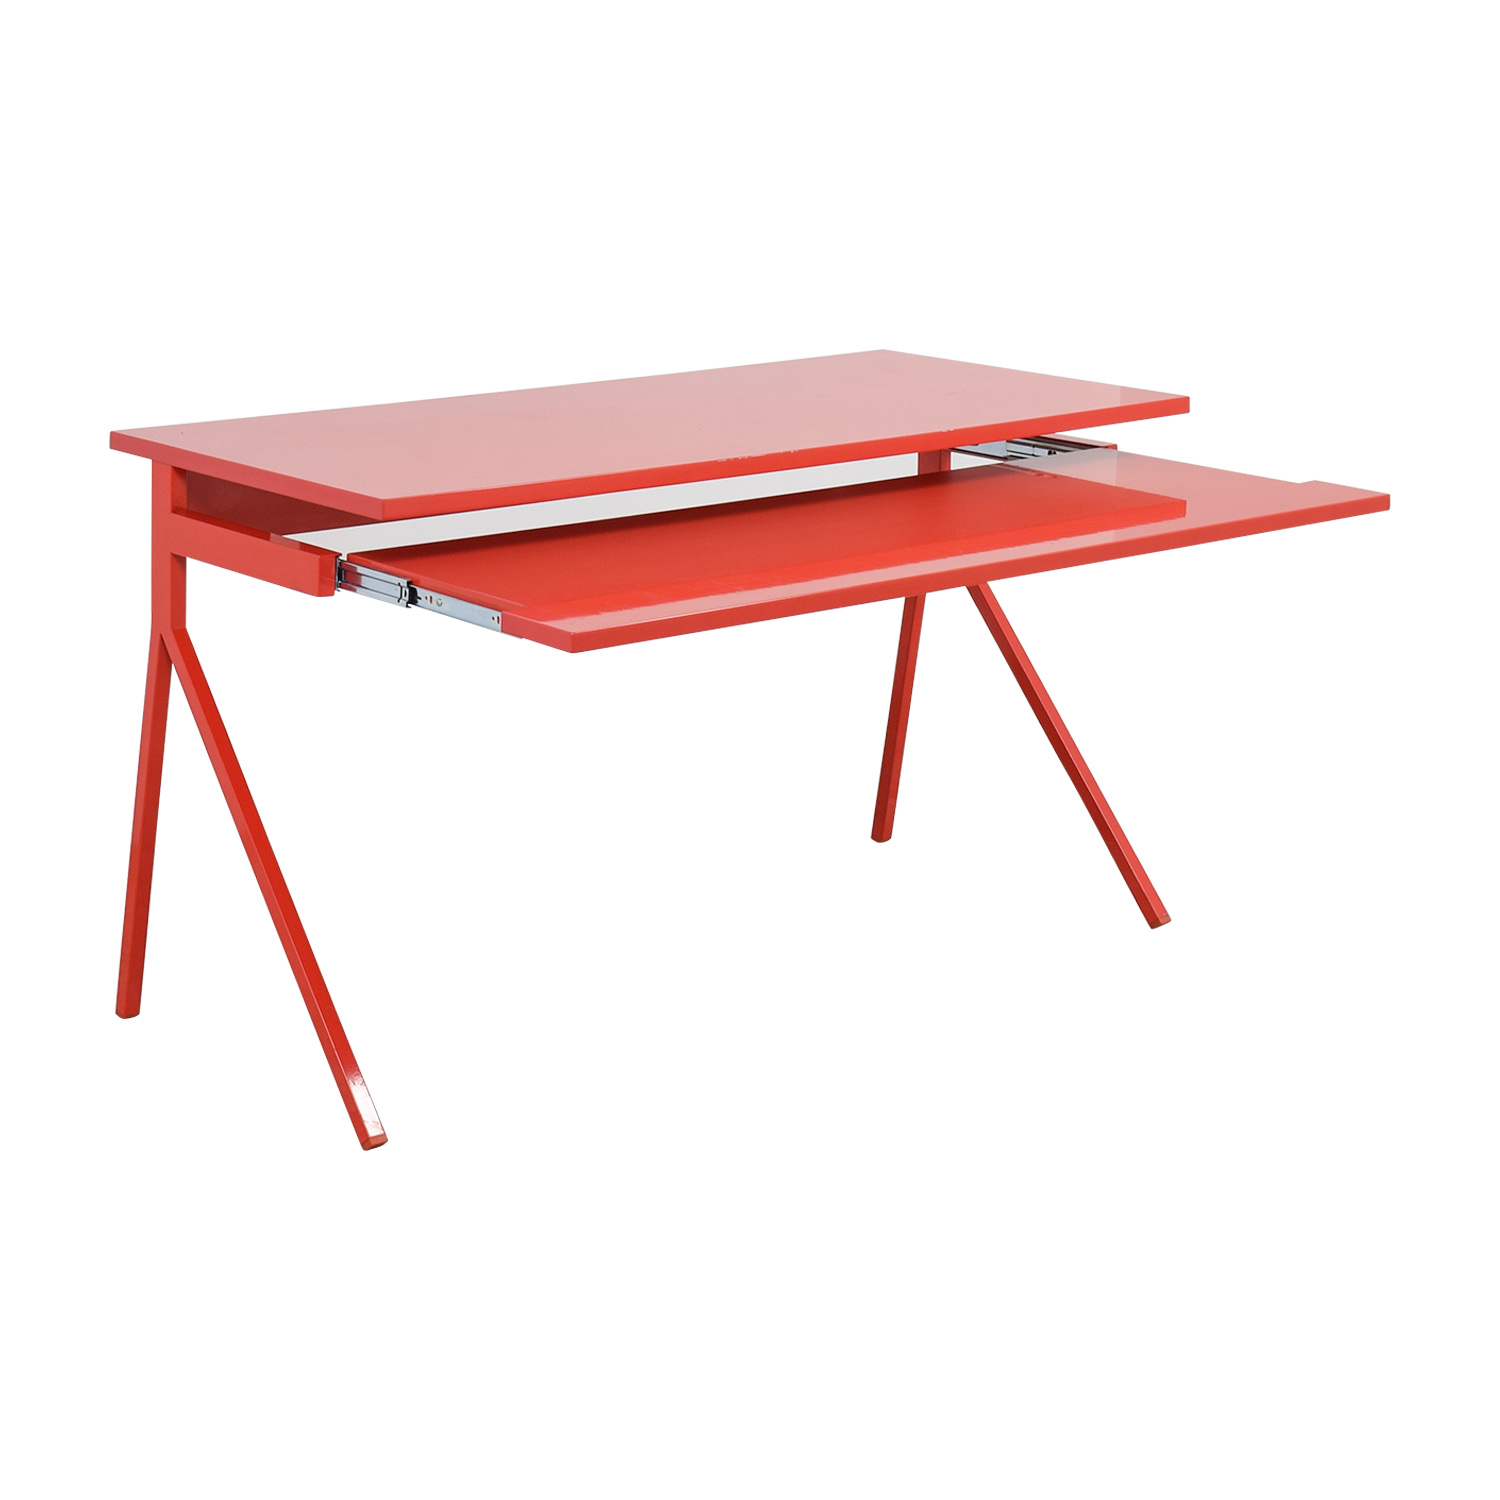 Blu Dot Blu Dot Red Desk 51 used